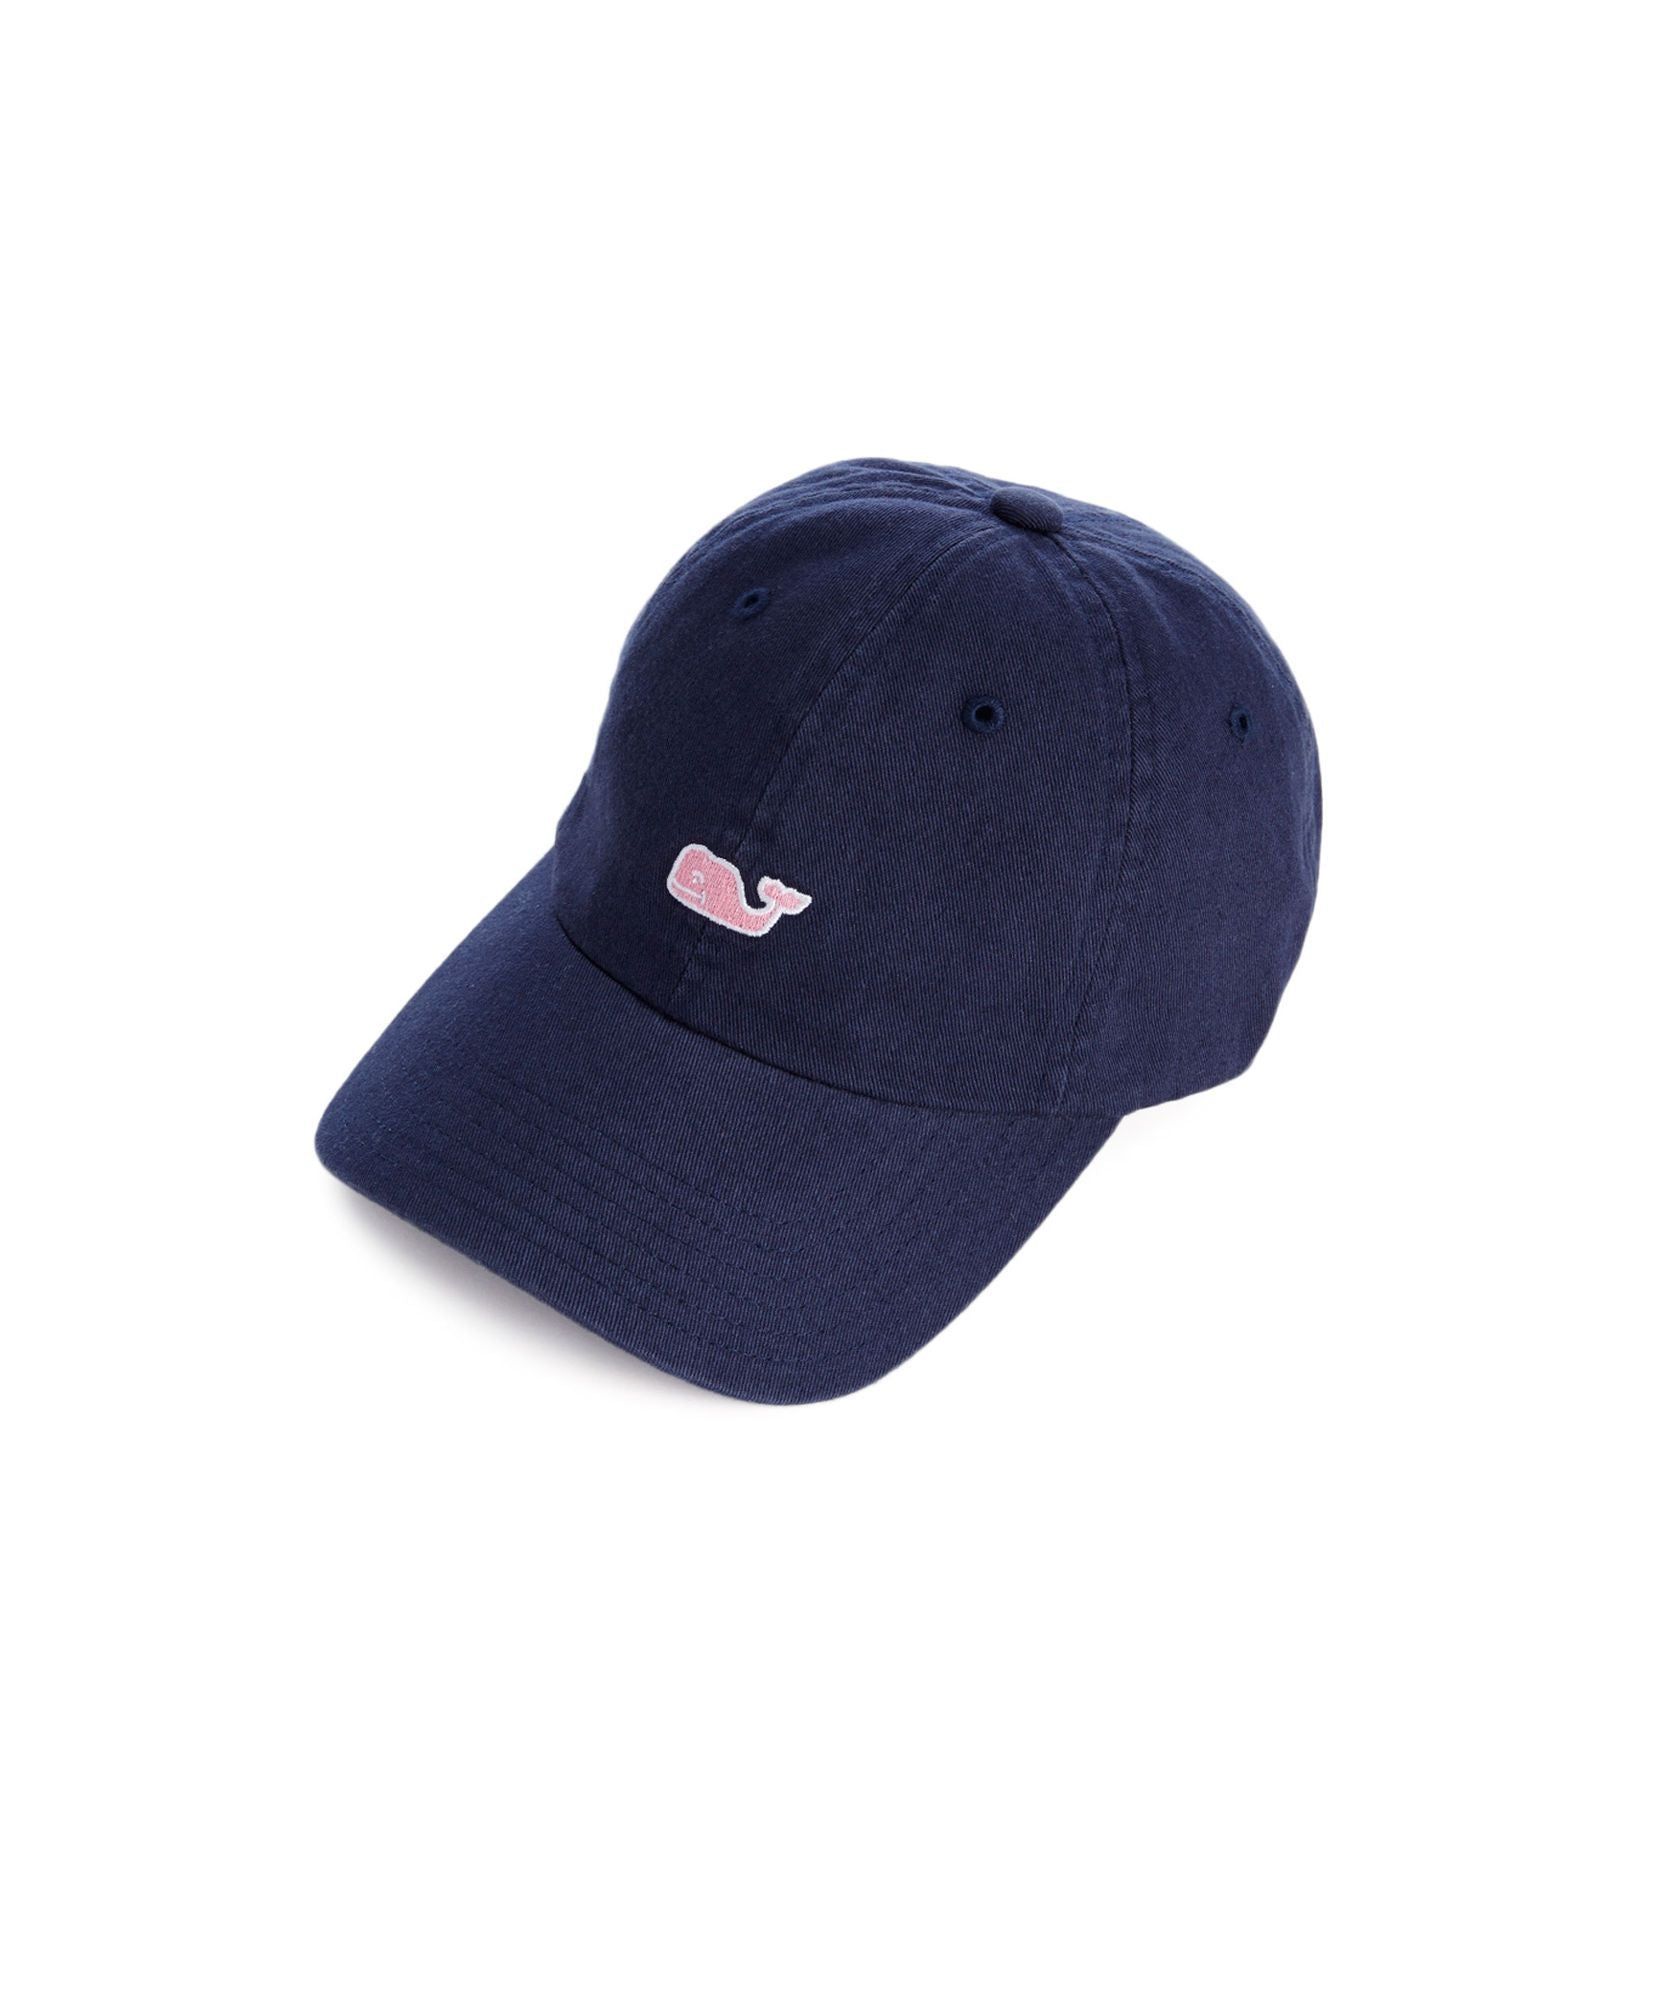 8c59098067549 Whale Logo Baseball Hat – Darling Custom Designs